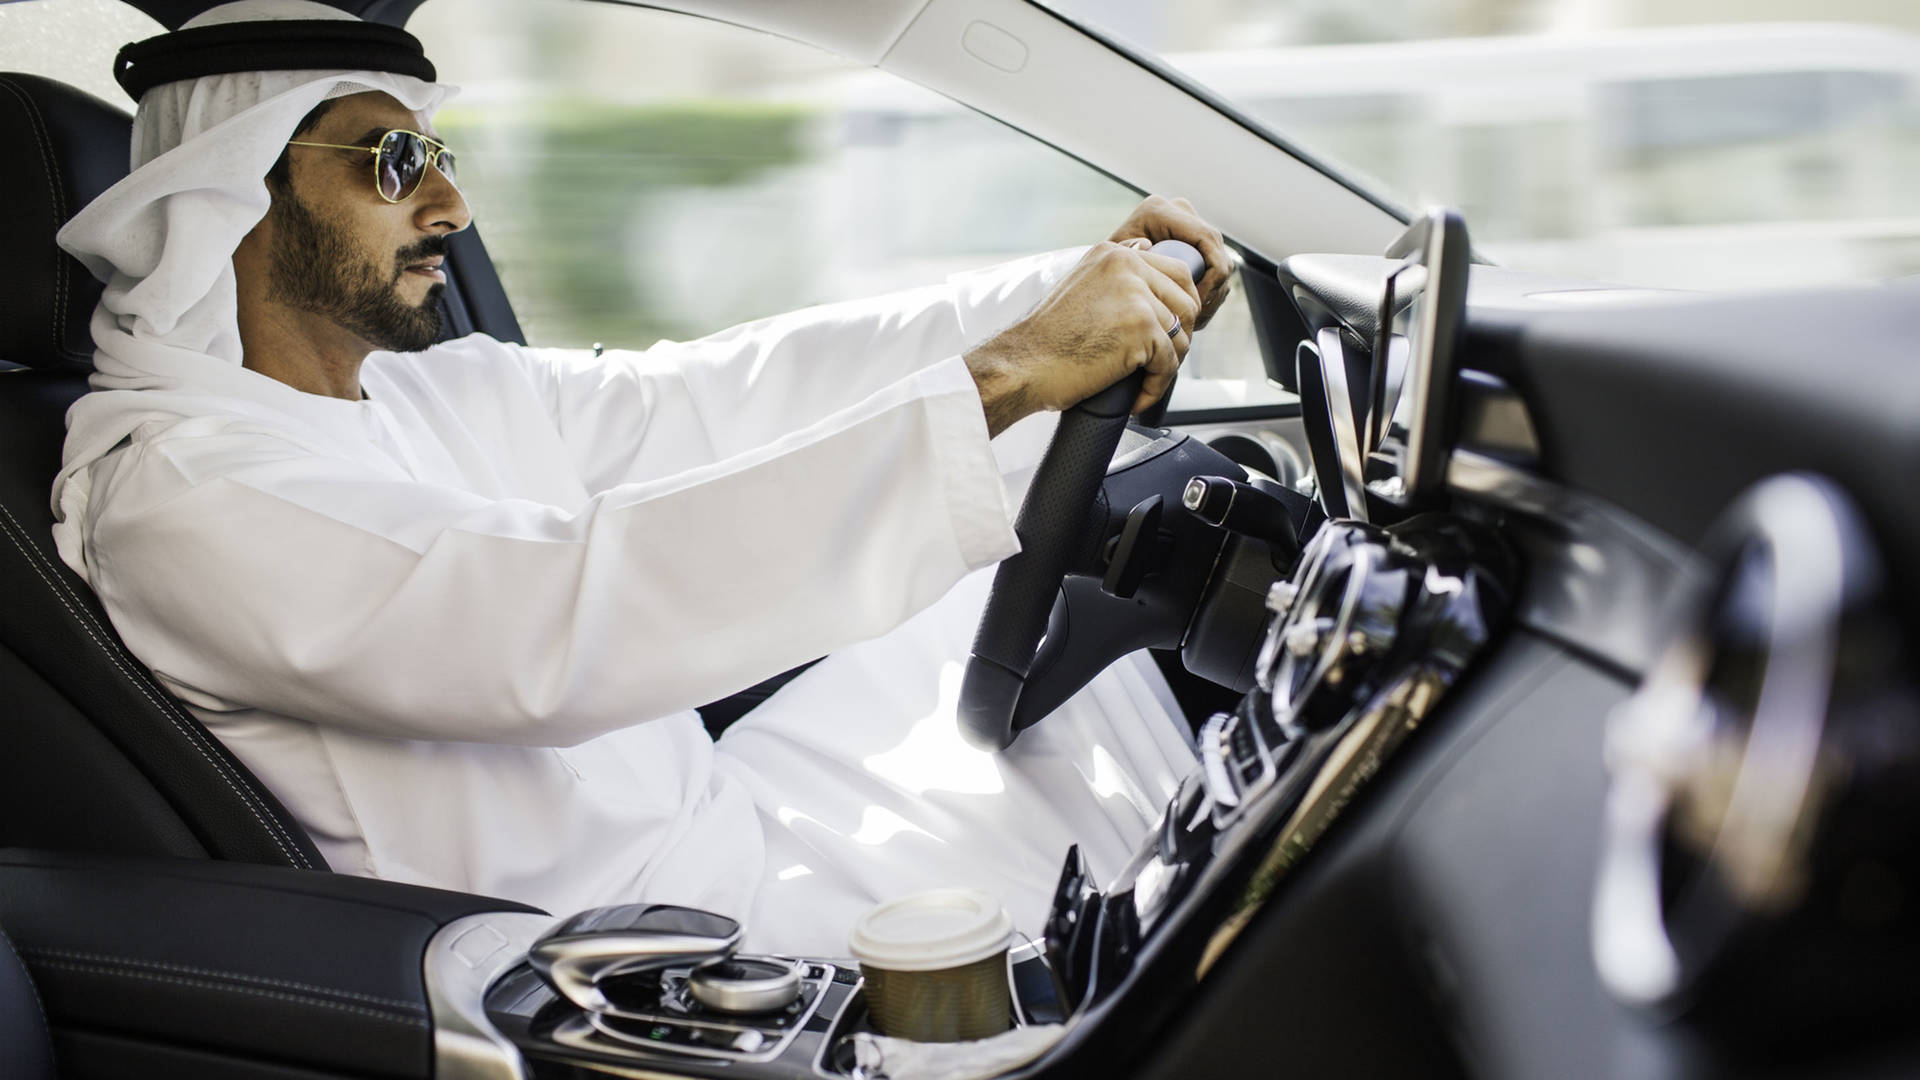 Driving through Abu Dhabi in a supercar